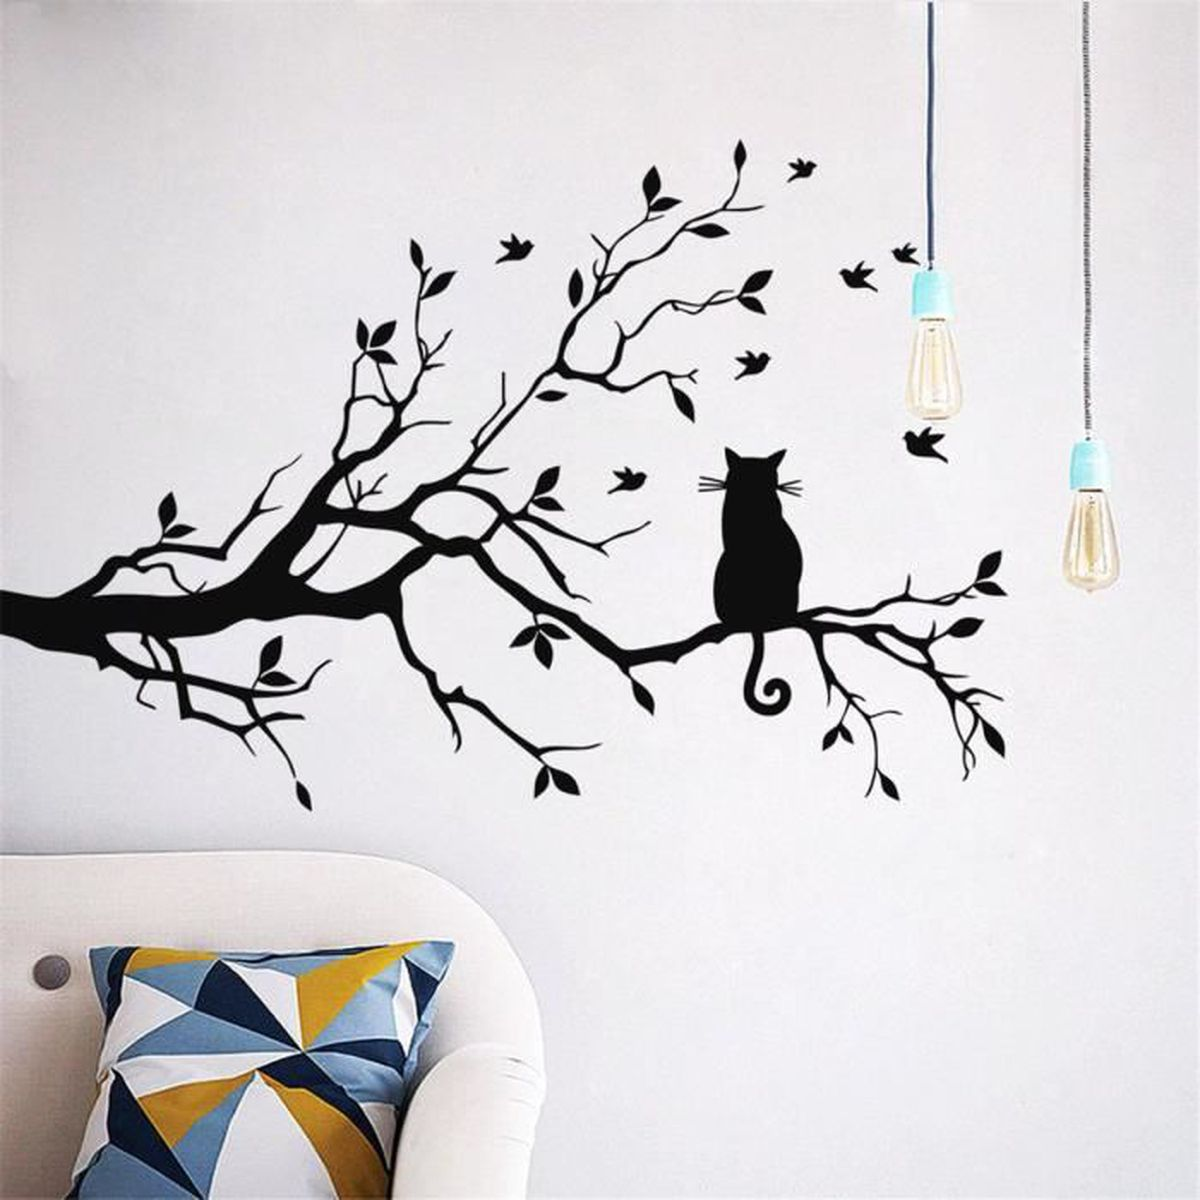 getek arbre sticker mural et noir mur de chat maison autocollant d coration murale autocollant. Black Bedroom Furniture Sets. Home Design Ideas